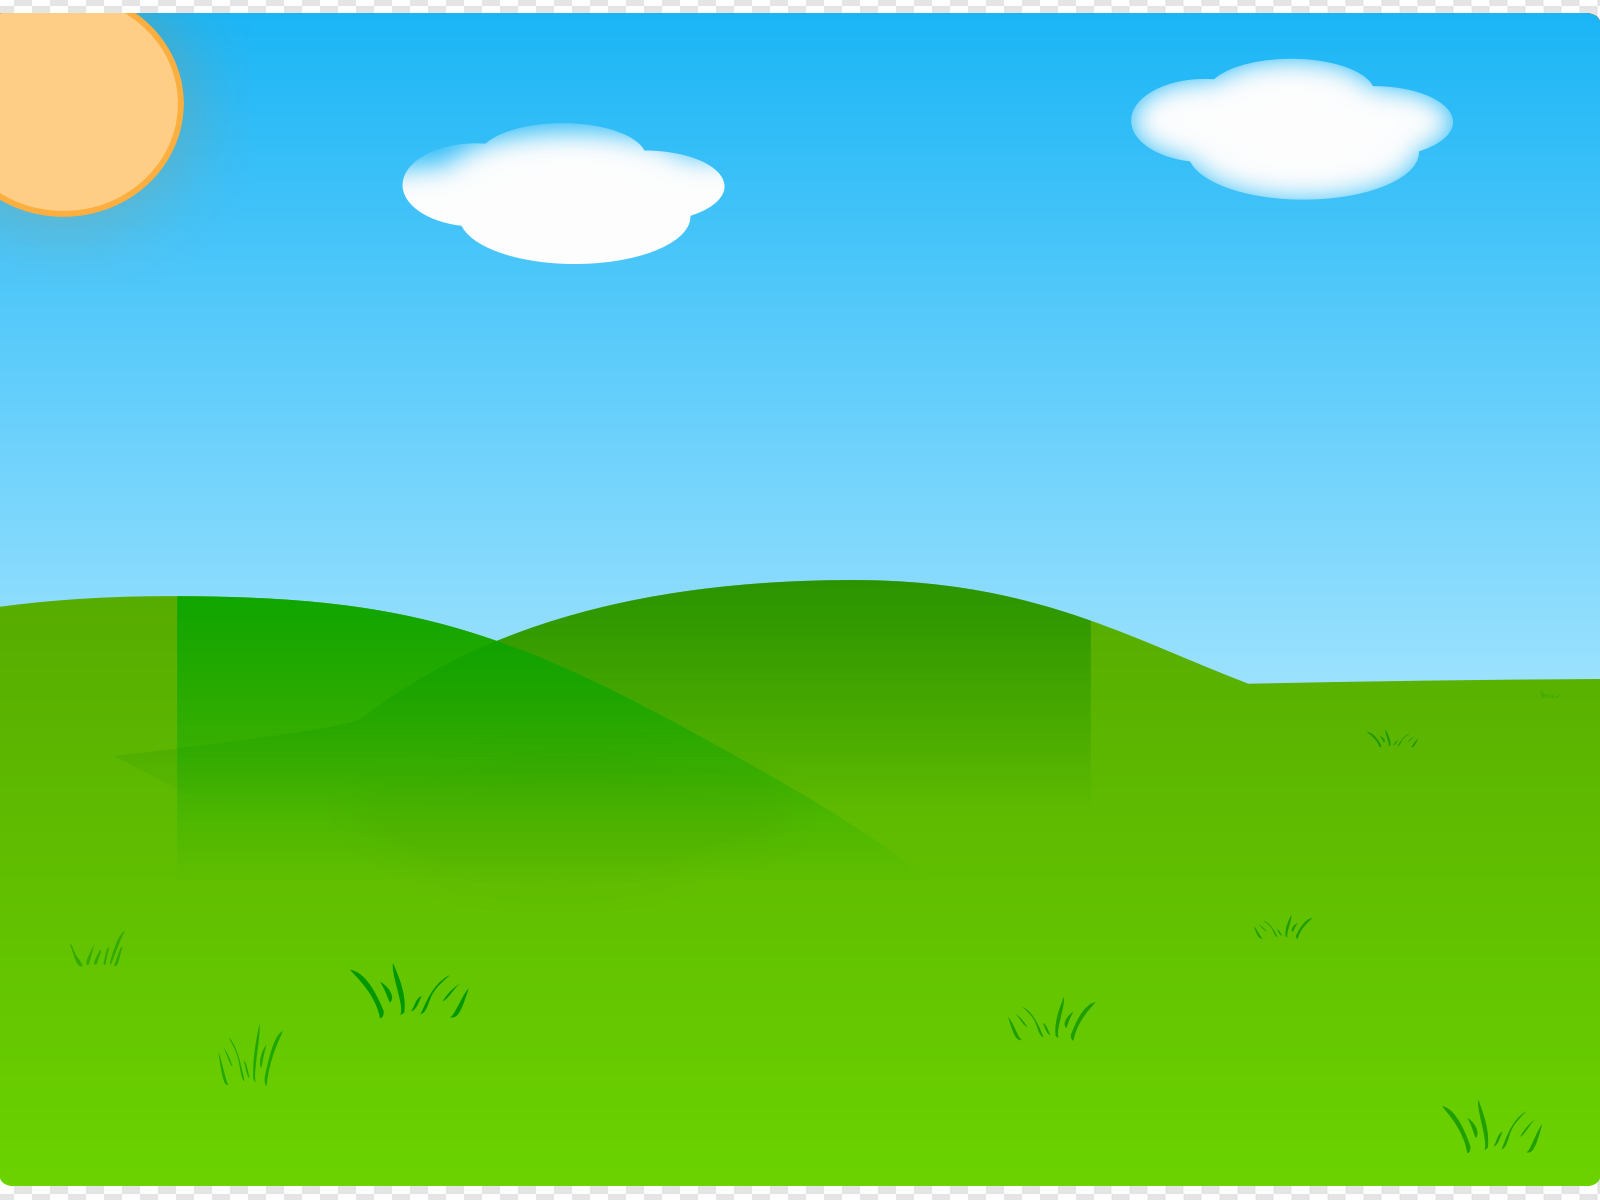 Plain Farm Background Clip art, Icon and SVG.